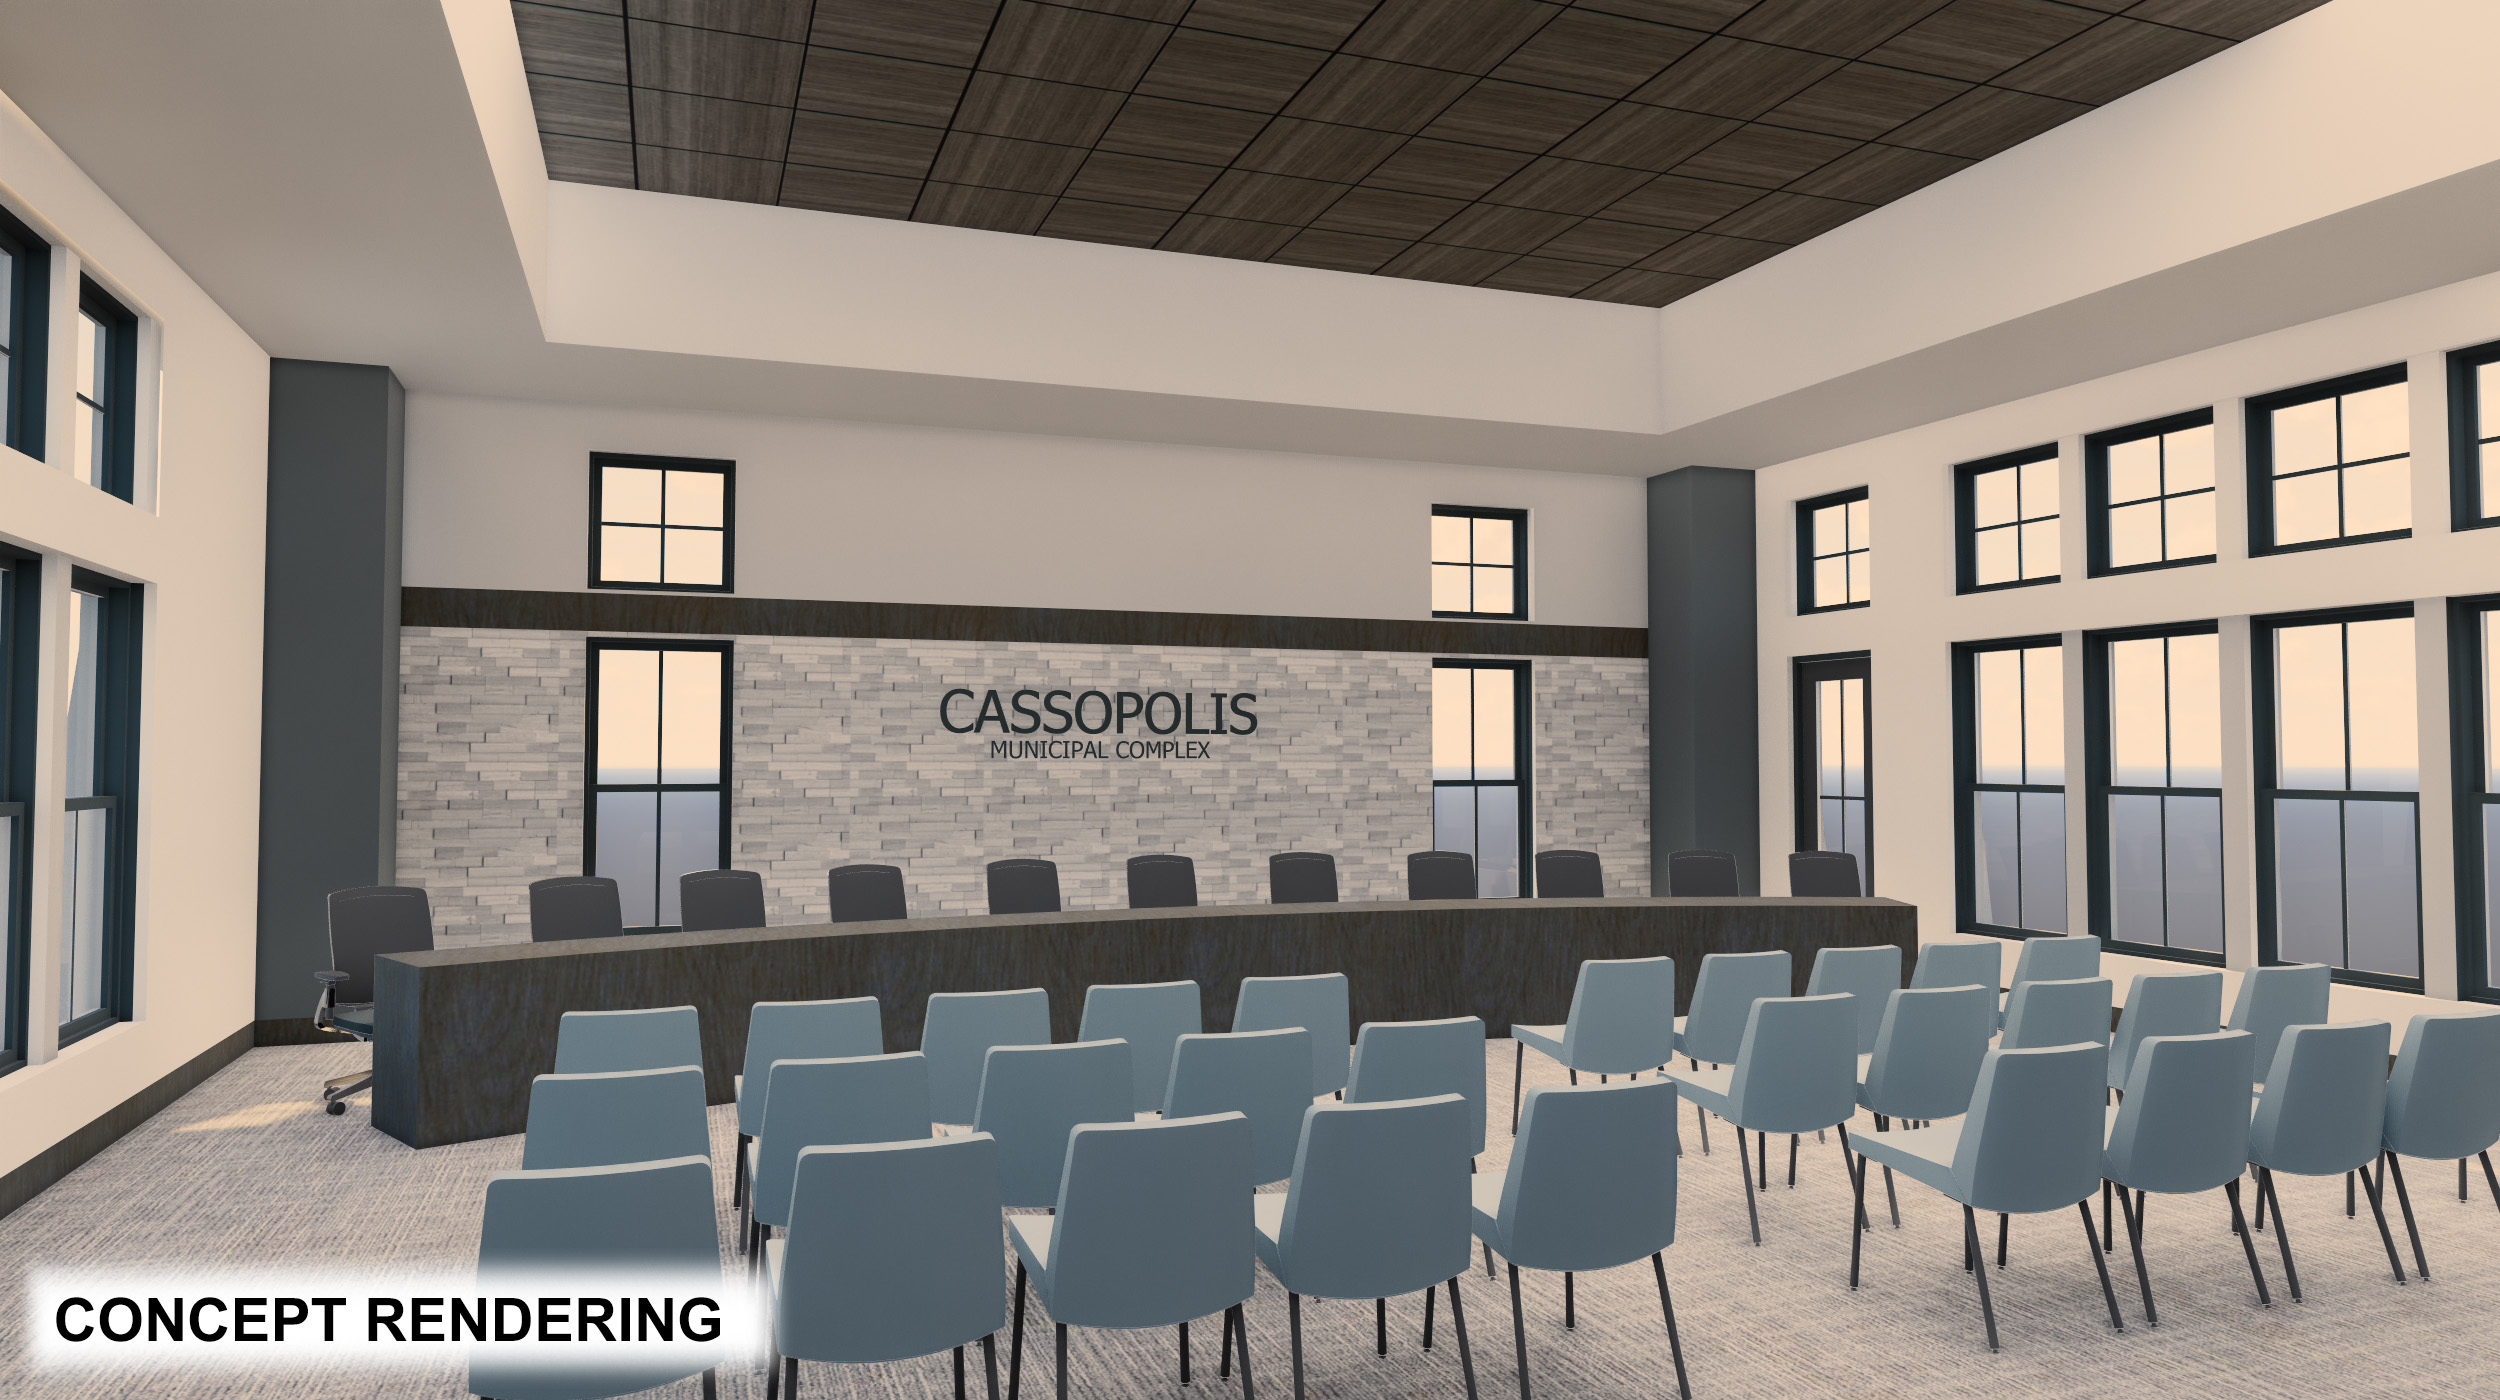 Cassopolis Municipal Building Meeting Hall with furniture rendering